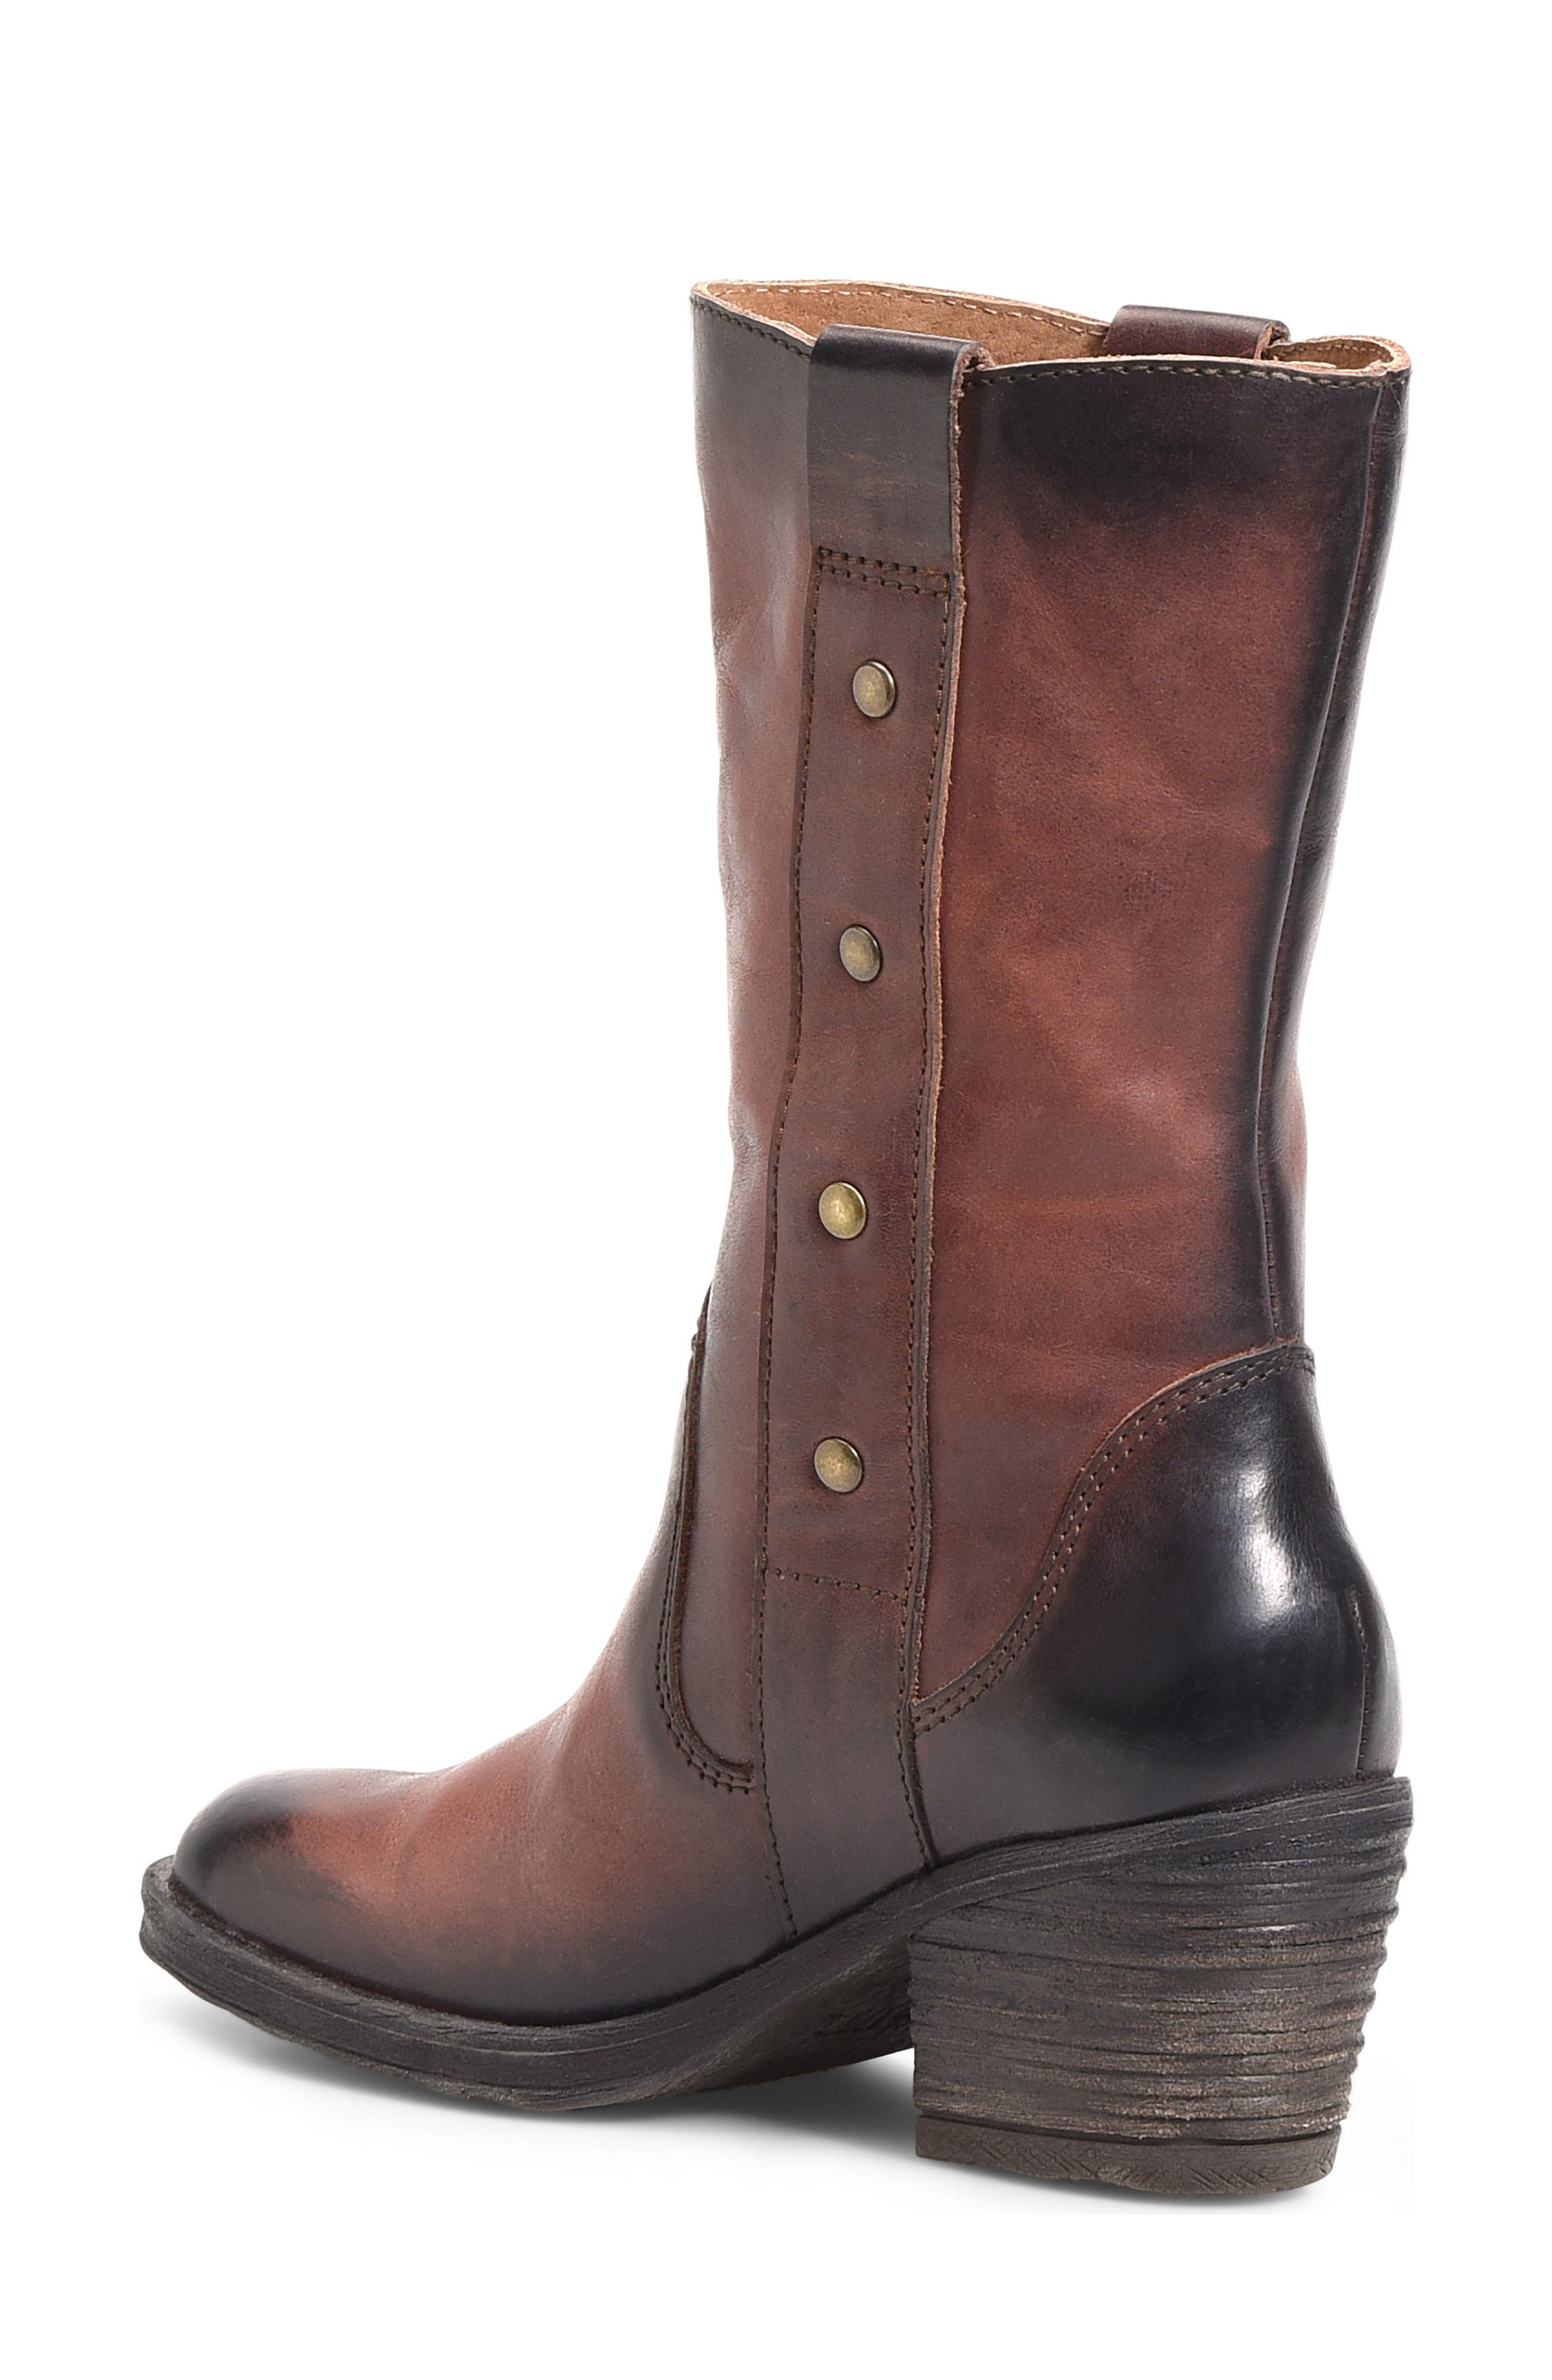 Copper Studded Boot,                             Alternate thumbnail 2, color,                             200